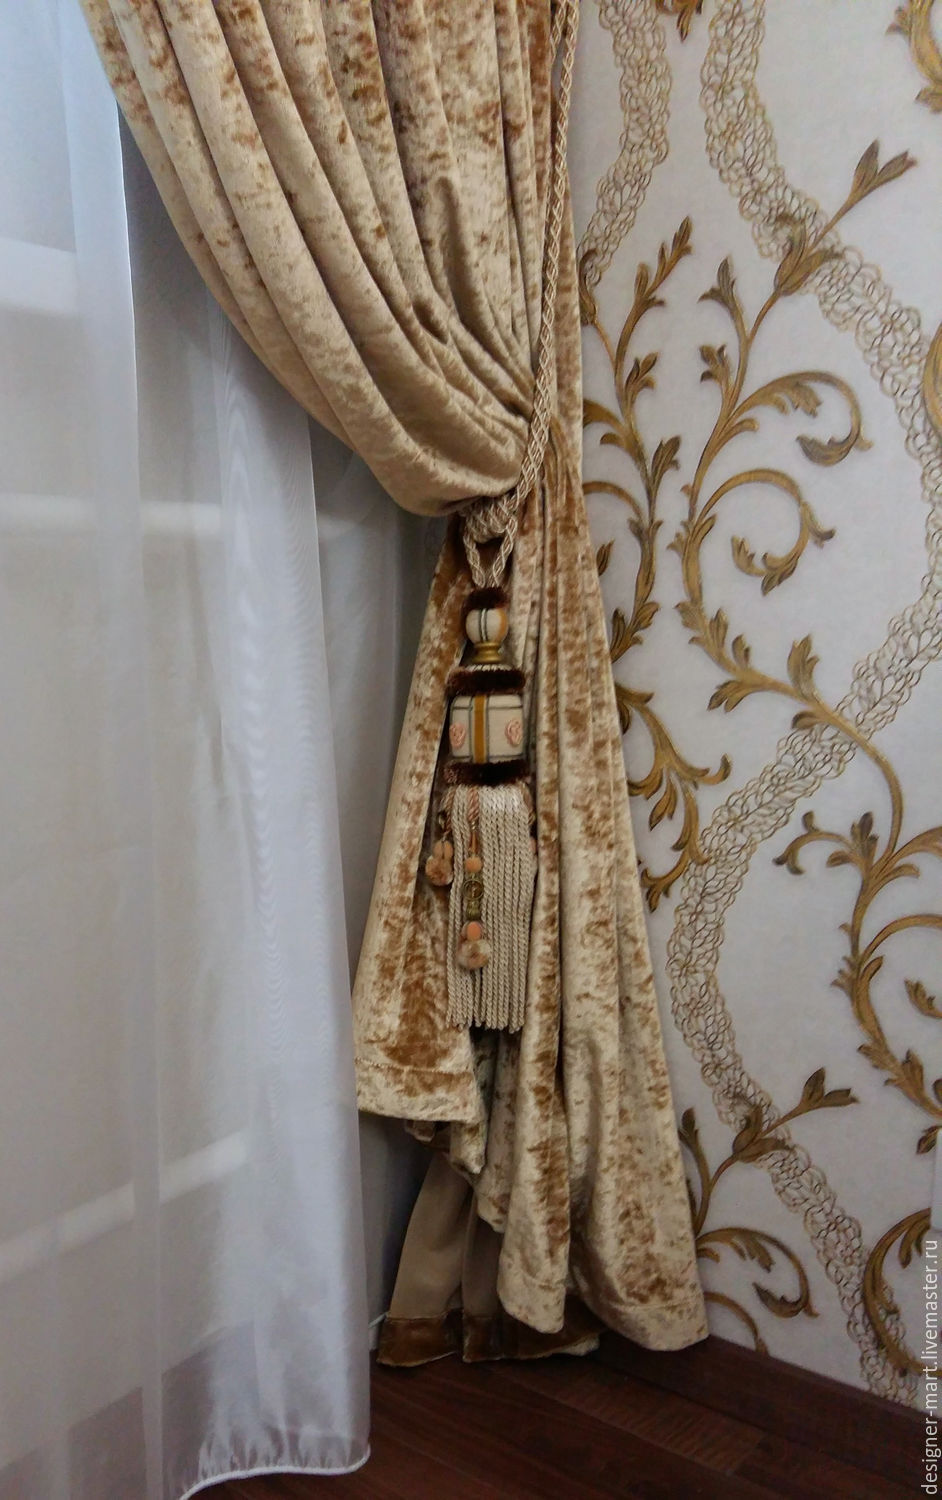 Design Velvet Curtains buy gold velvet curtains for living room on livemaster online shop home textiles carpets handmade living